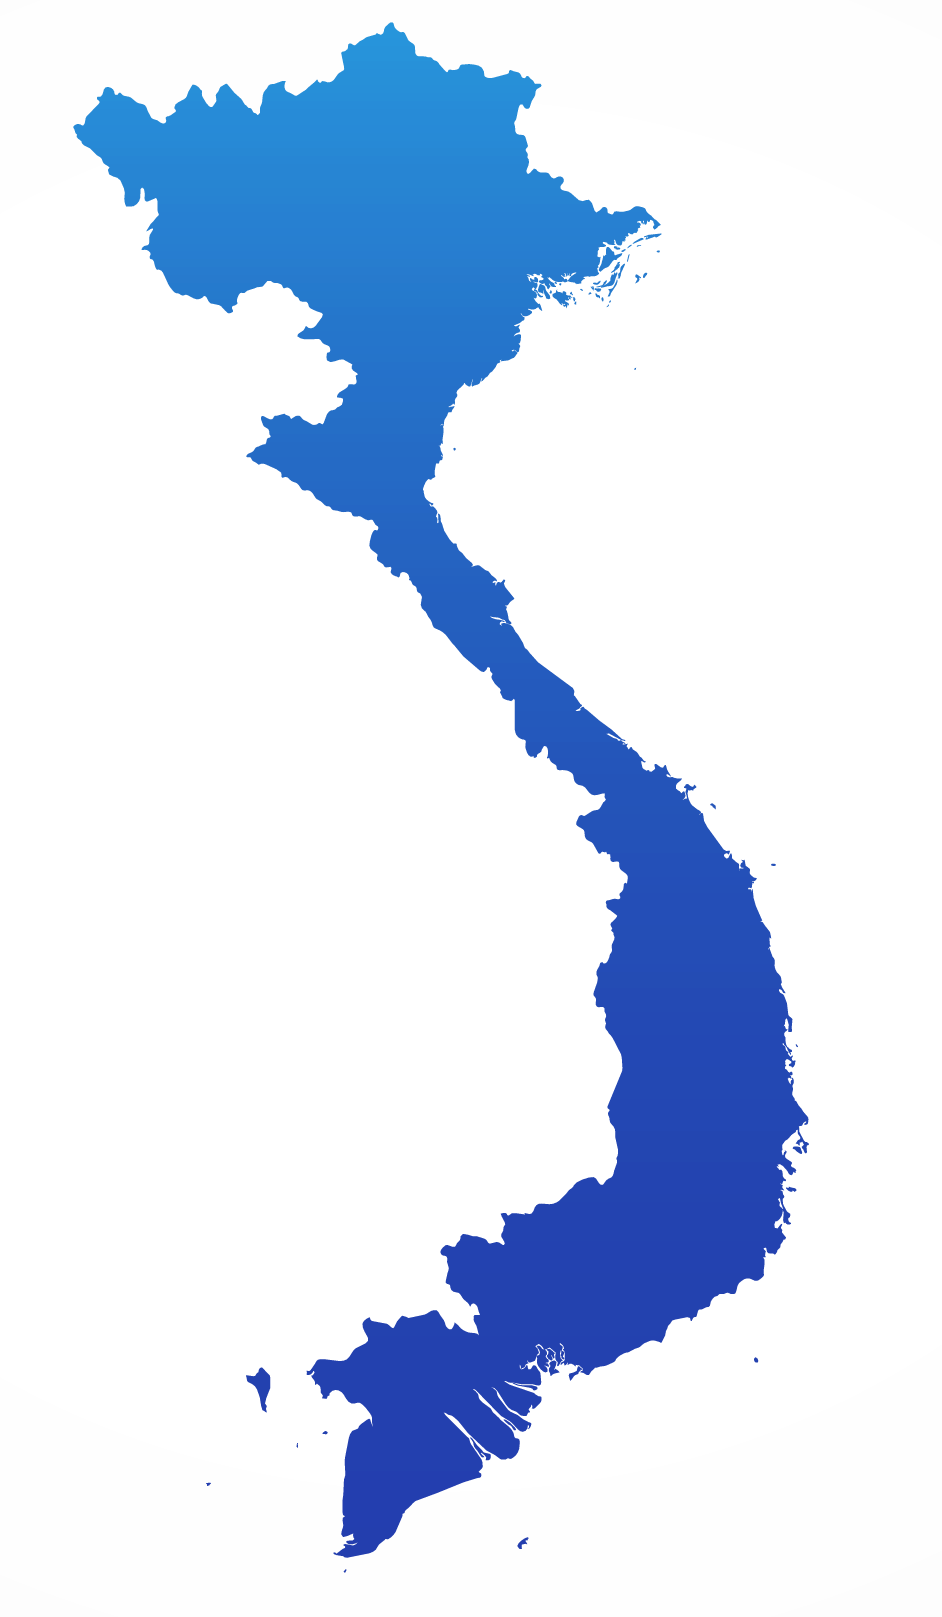 vn-map